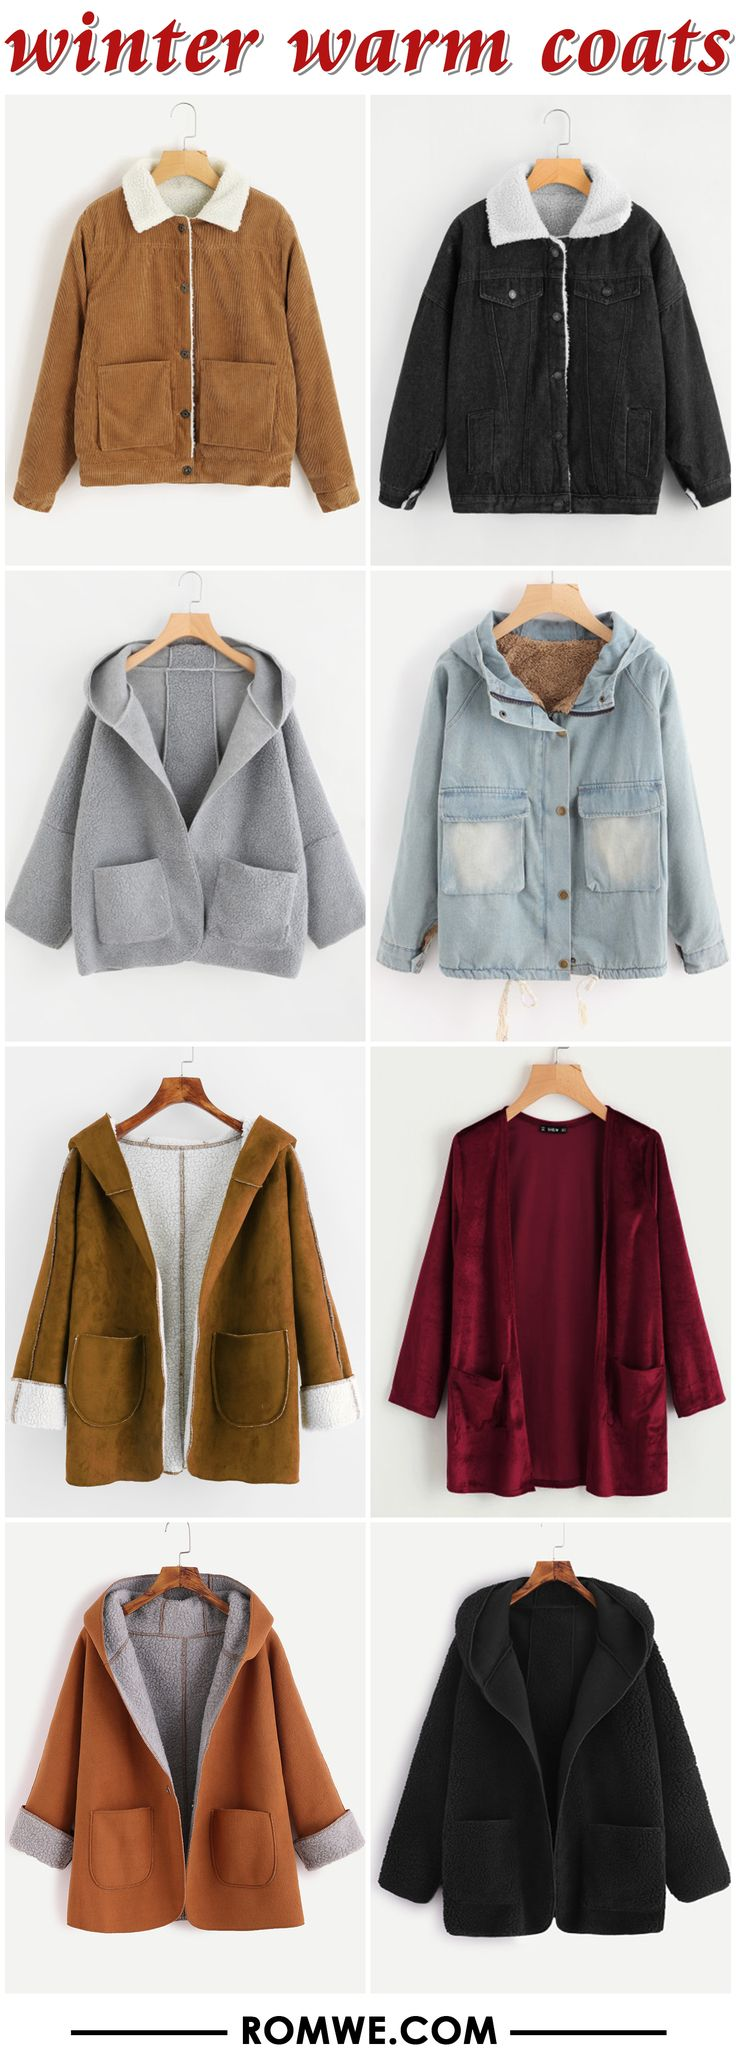 winter warm coats 2017 - romwe.com